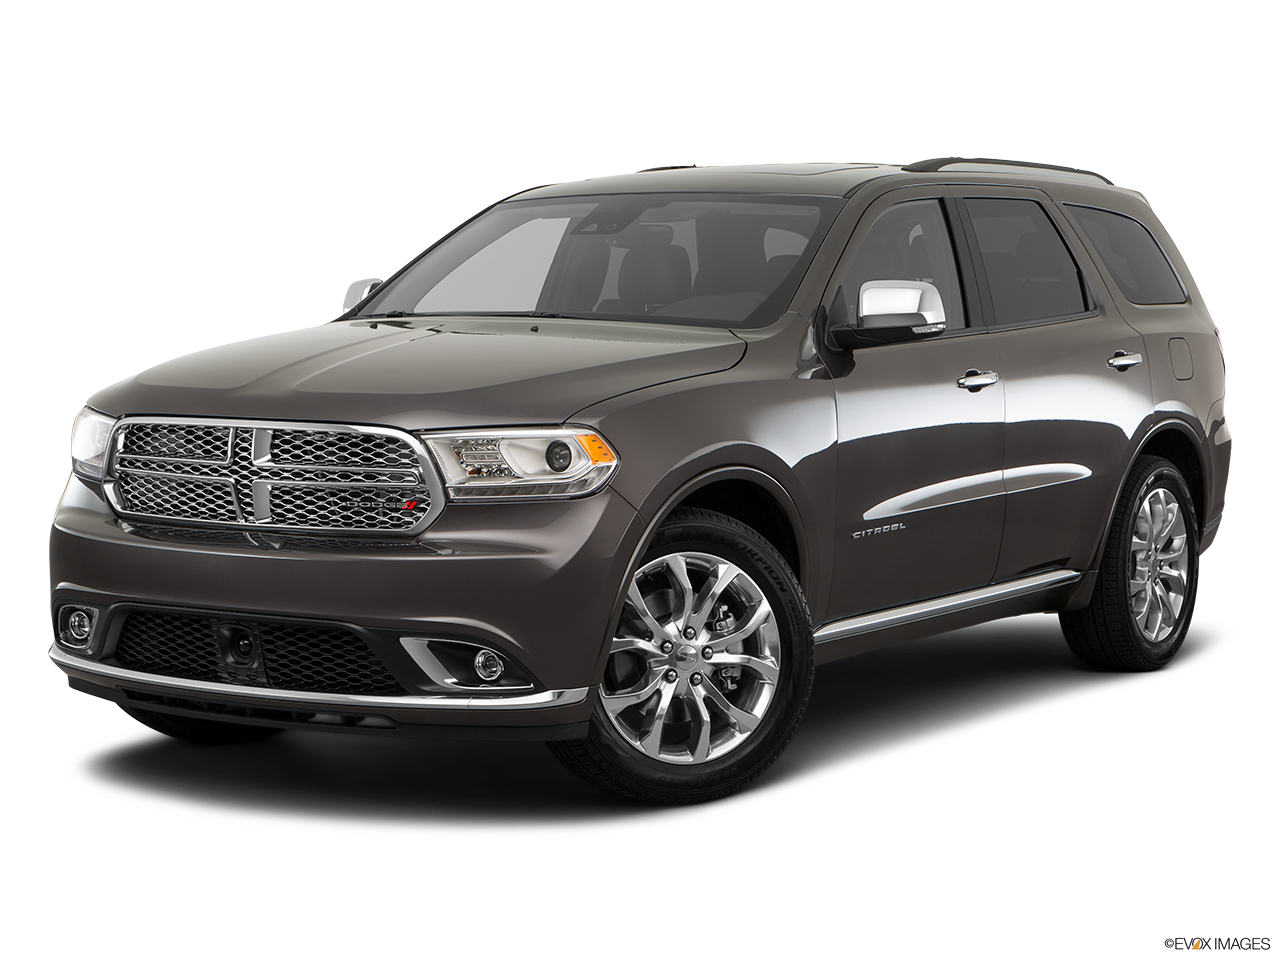 Test Drive A 2017 Dodge Durango at Arrigo CDJR West Palm Beach in West Palm Beach